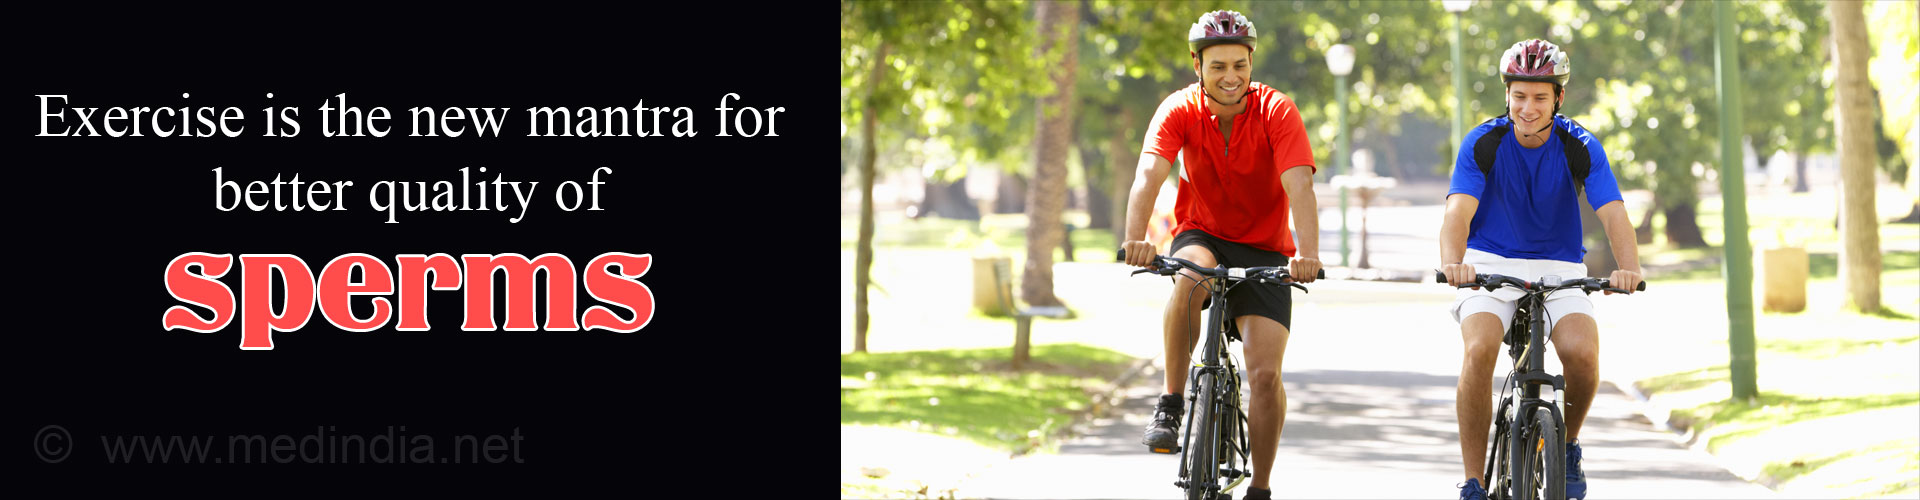 Moderate and Continuous Exercise Regimen may Boost Sperm Quality